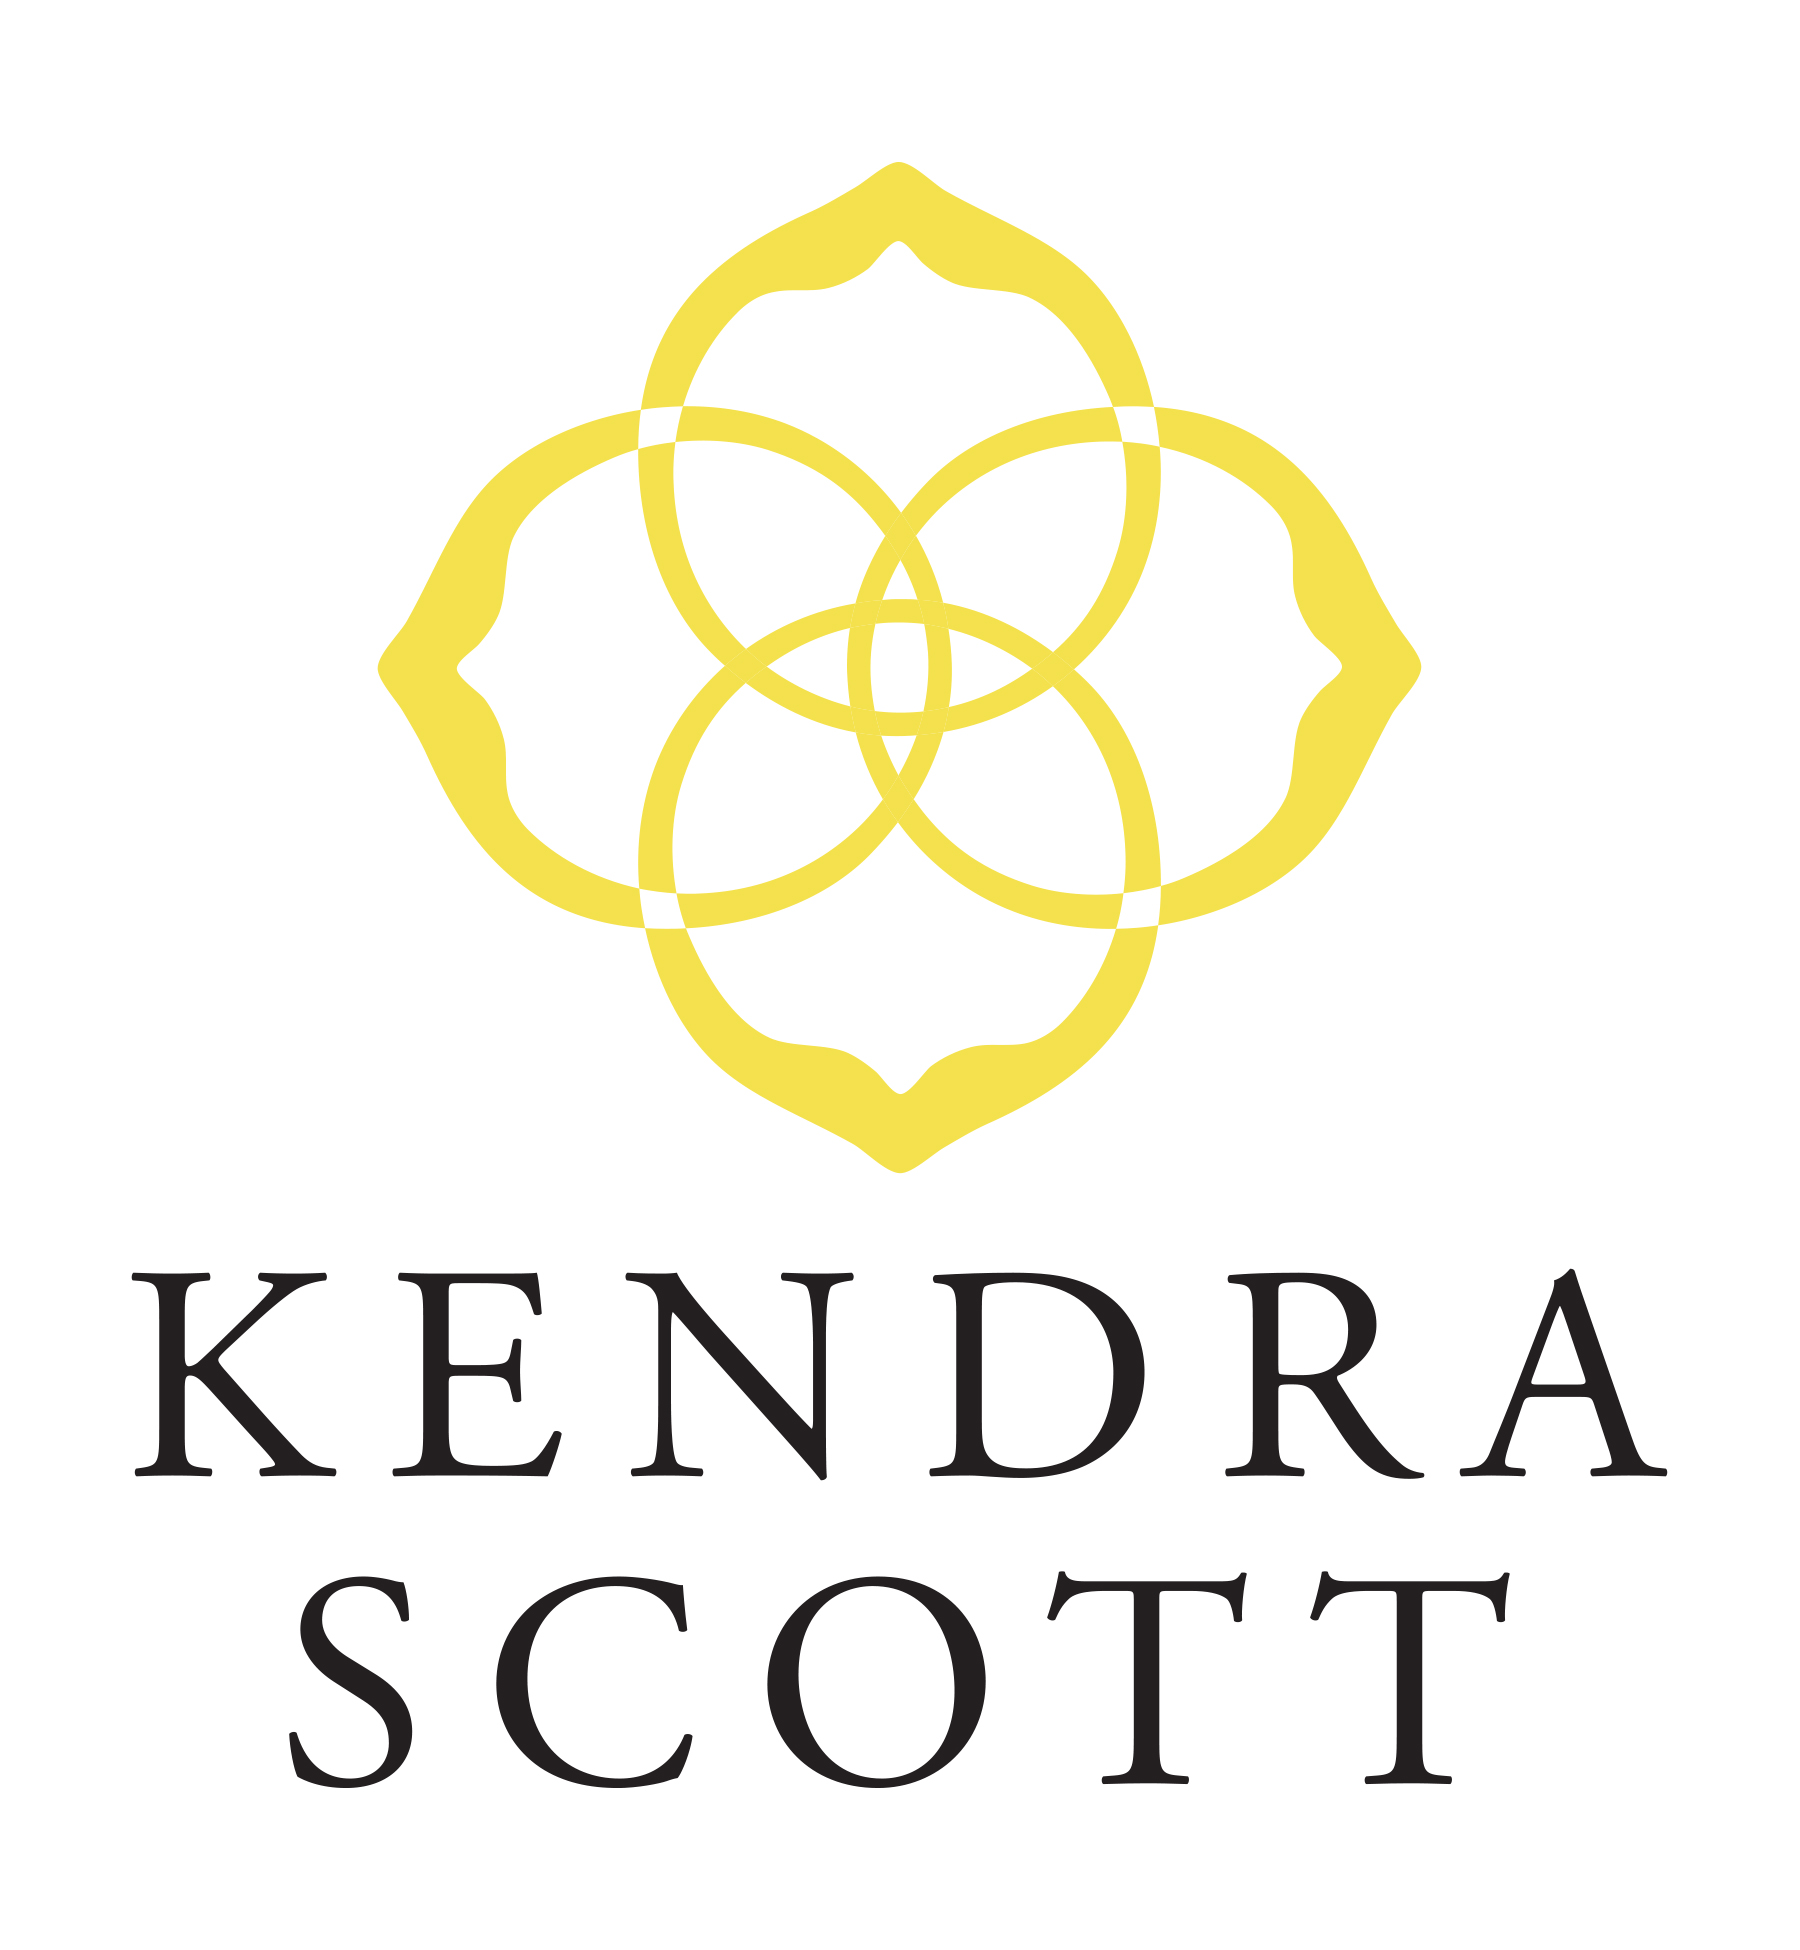 Kendra Scott Logo Step And Repeatstacked Jl Denverjl Denver